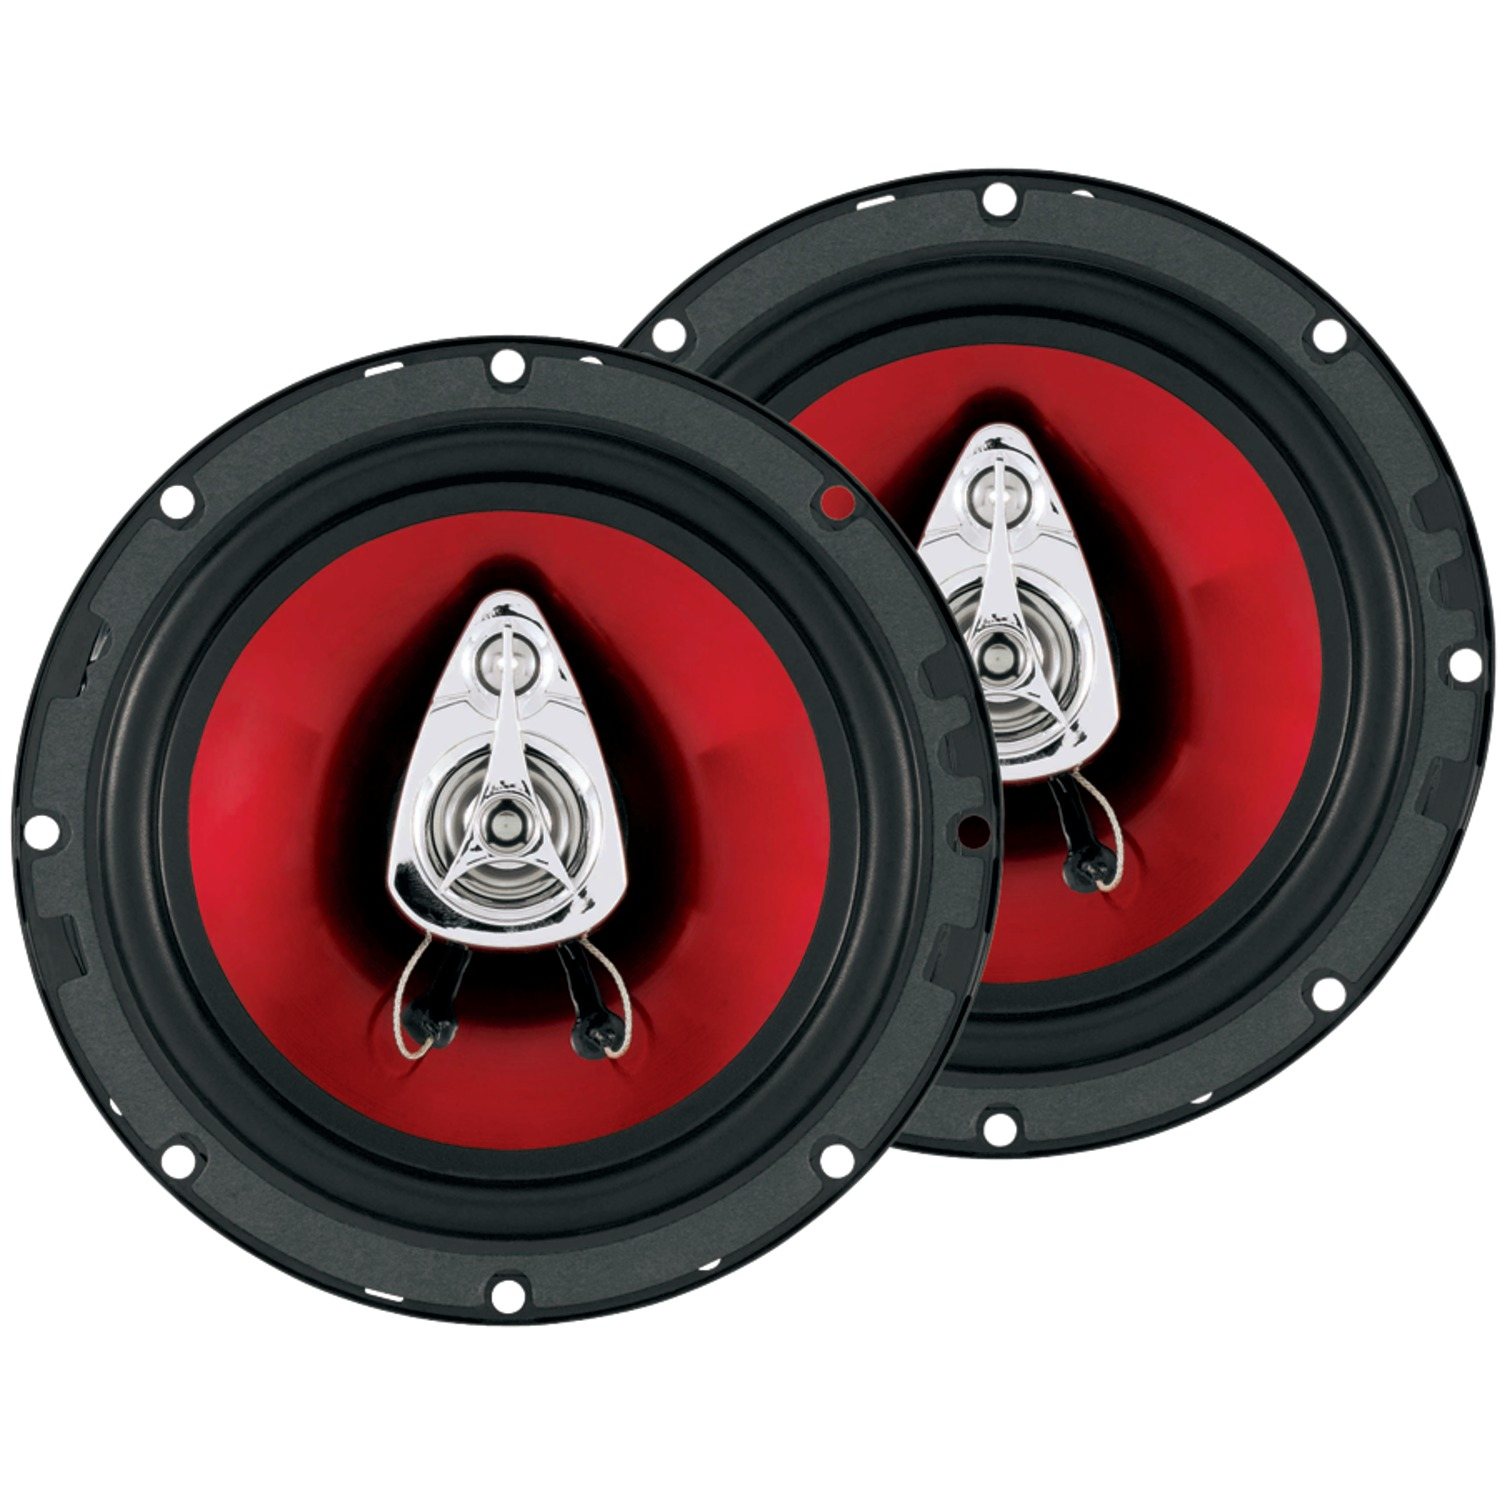 BOSS CH6530 Coaxial Stereo Speakers